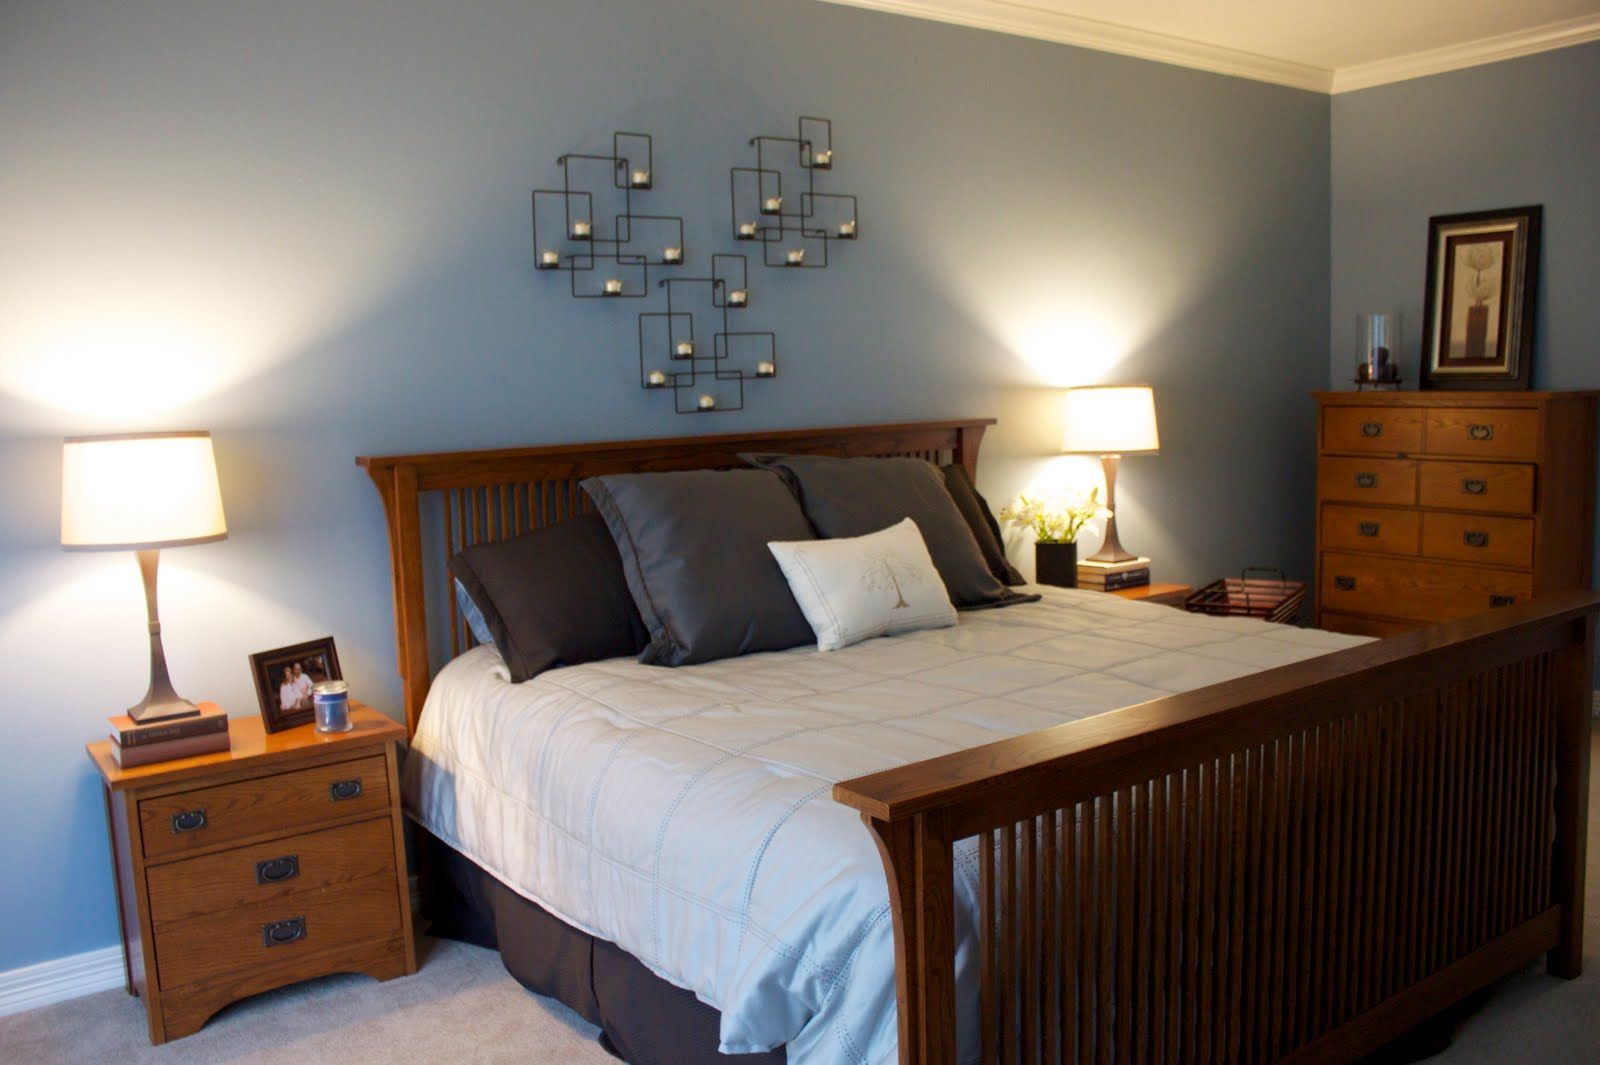 Bedroom paint ideas blue and brown - Soft Gray Blue Master Bedroom Color Design Looks Simple Yet Peaceful